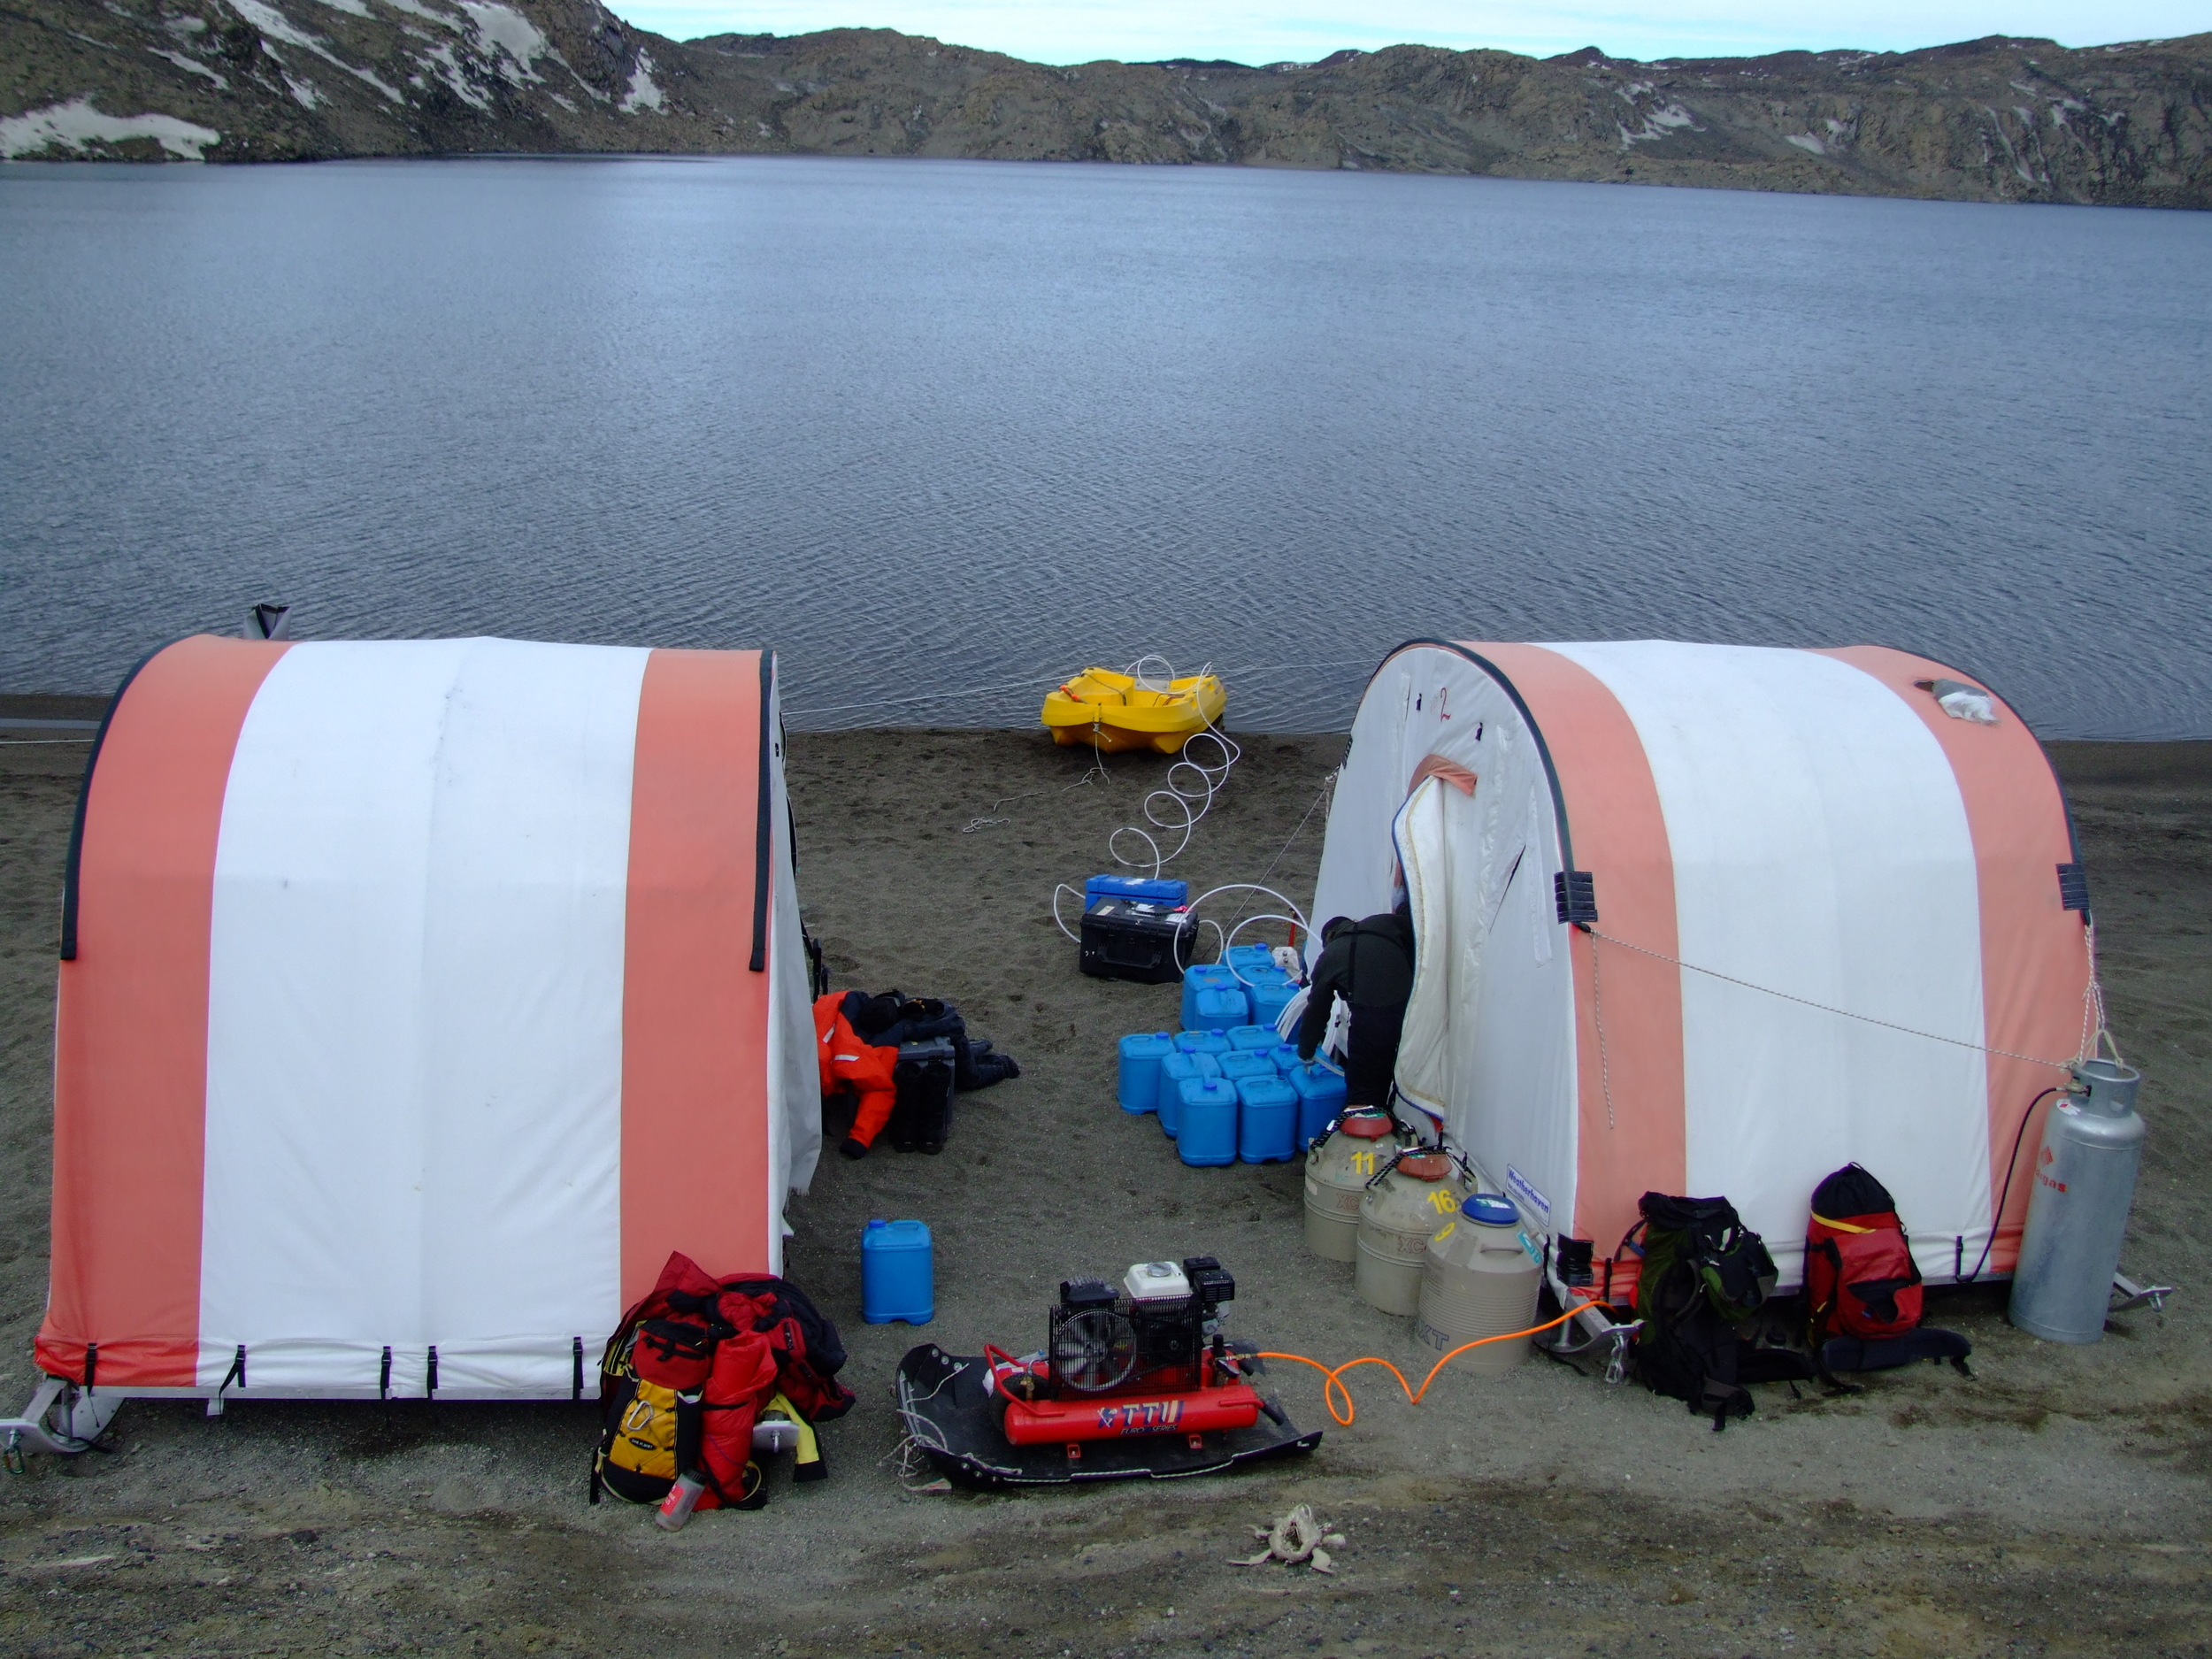 Researchers conducted their research from mobile work shelters on the Deep Lake shoreline.   Photos from 2008 expedition.  Ricardo Cavicchioli (used with permission)